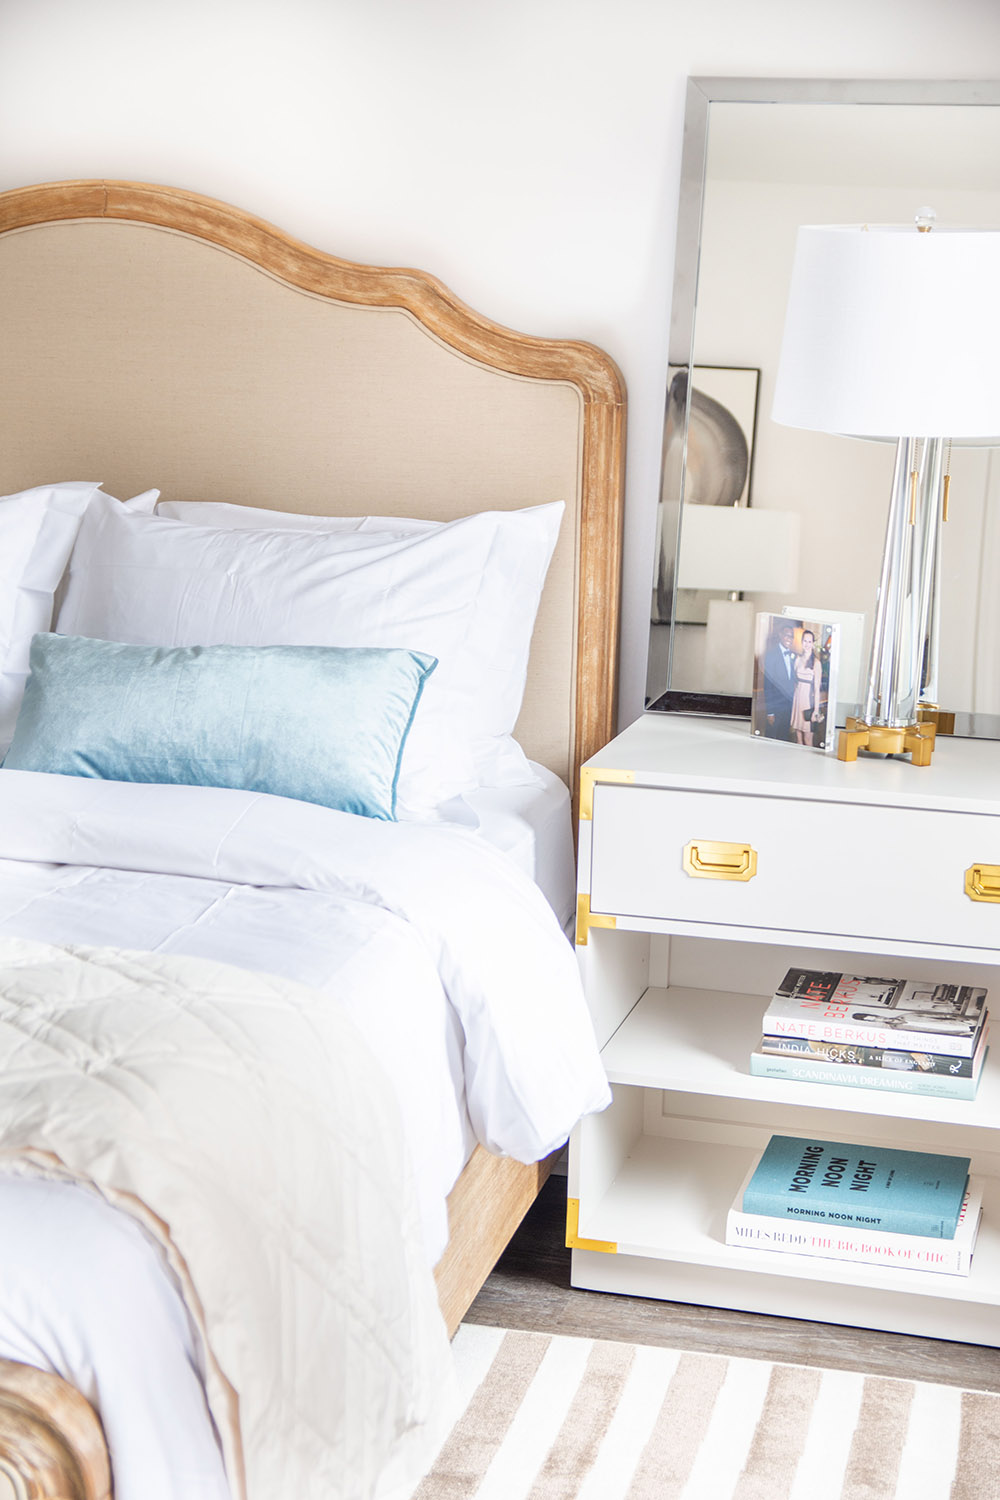 A bedroom scene with a bed and nightstand.